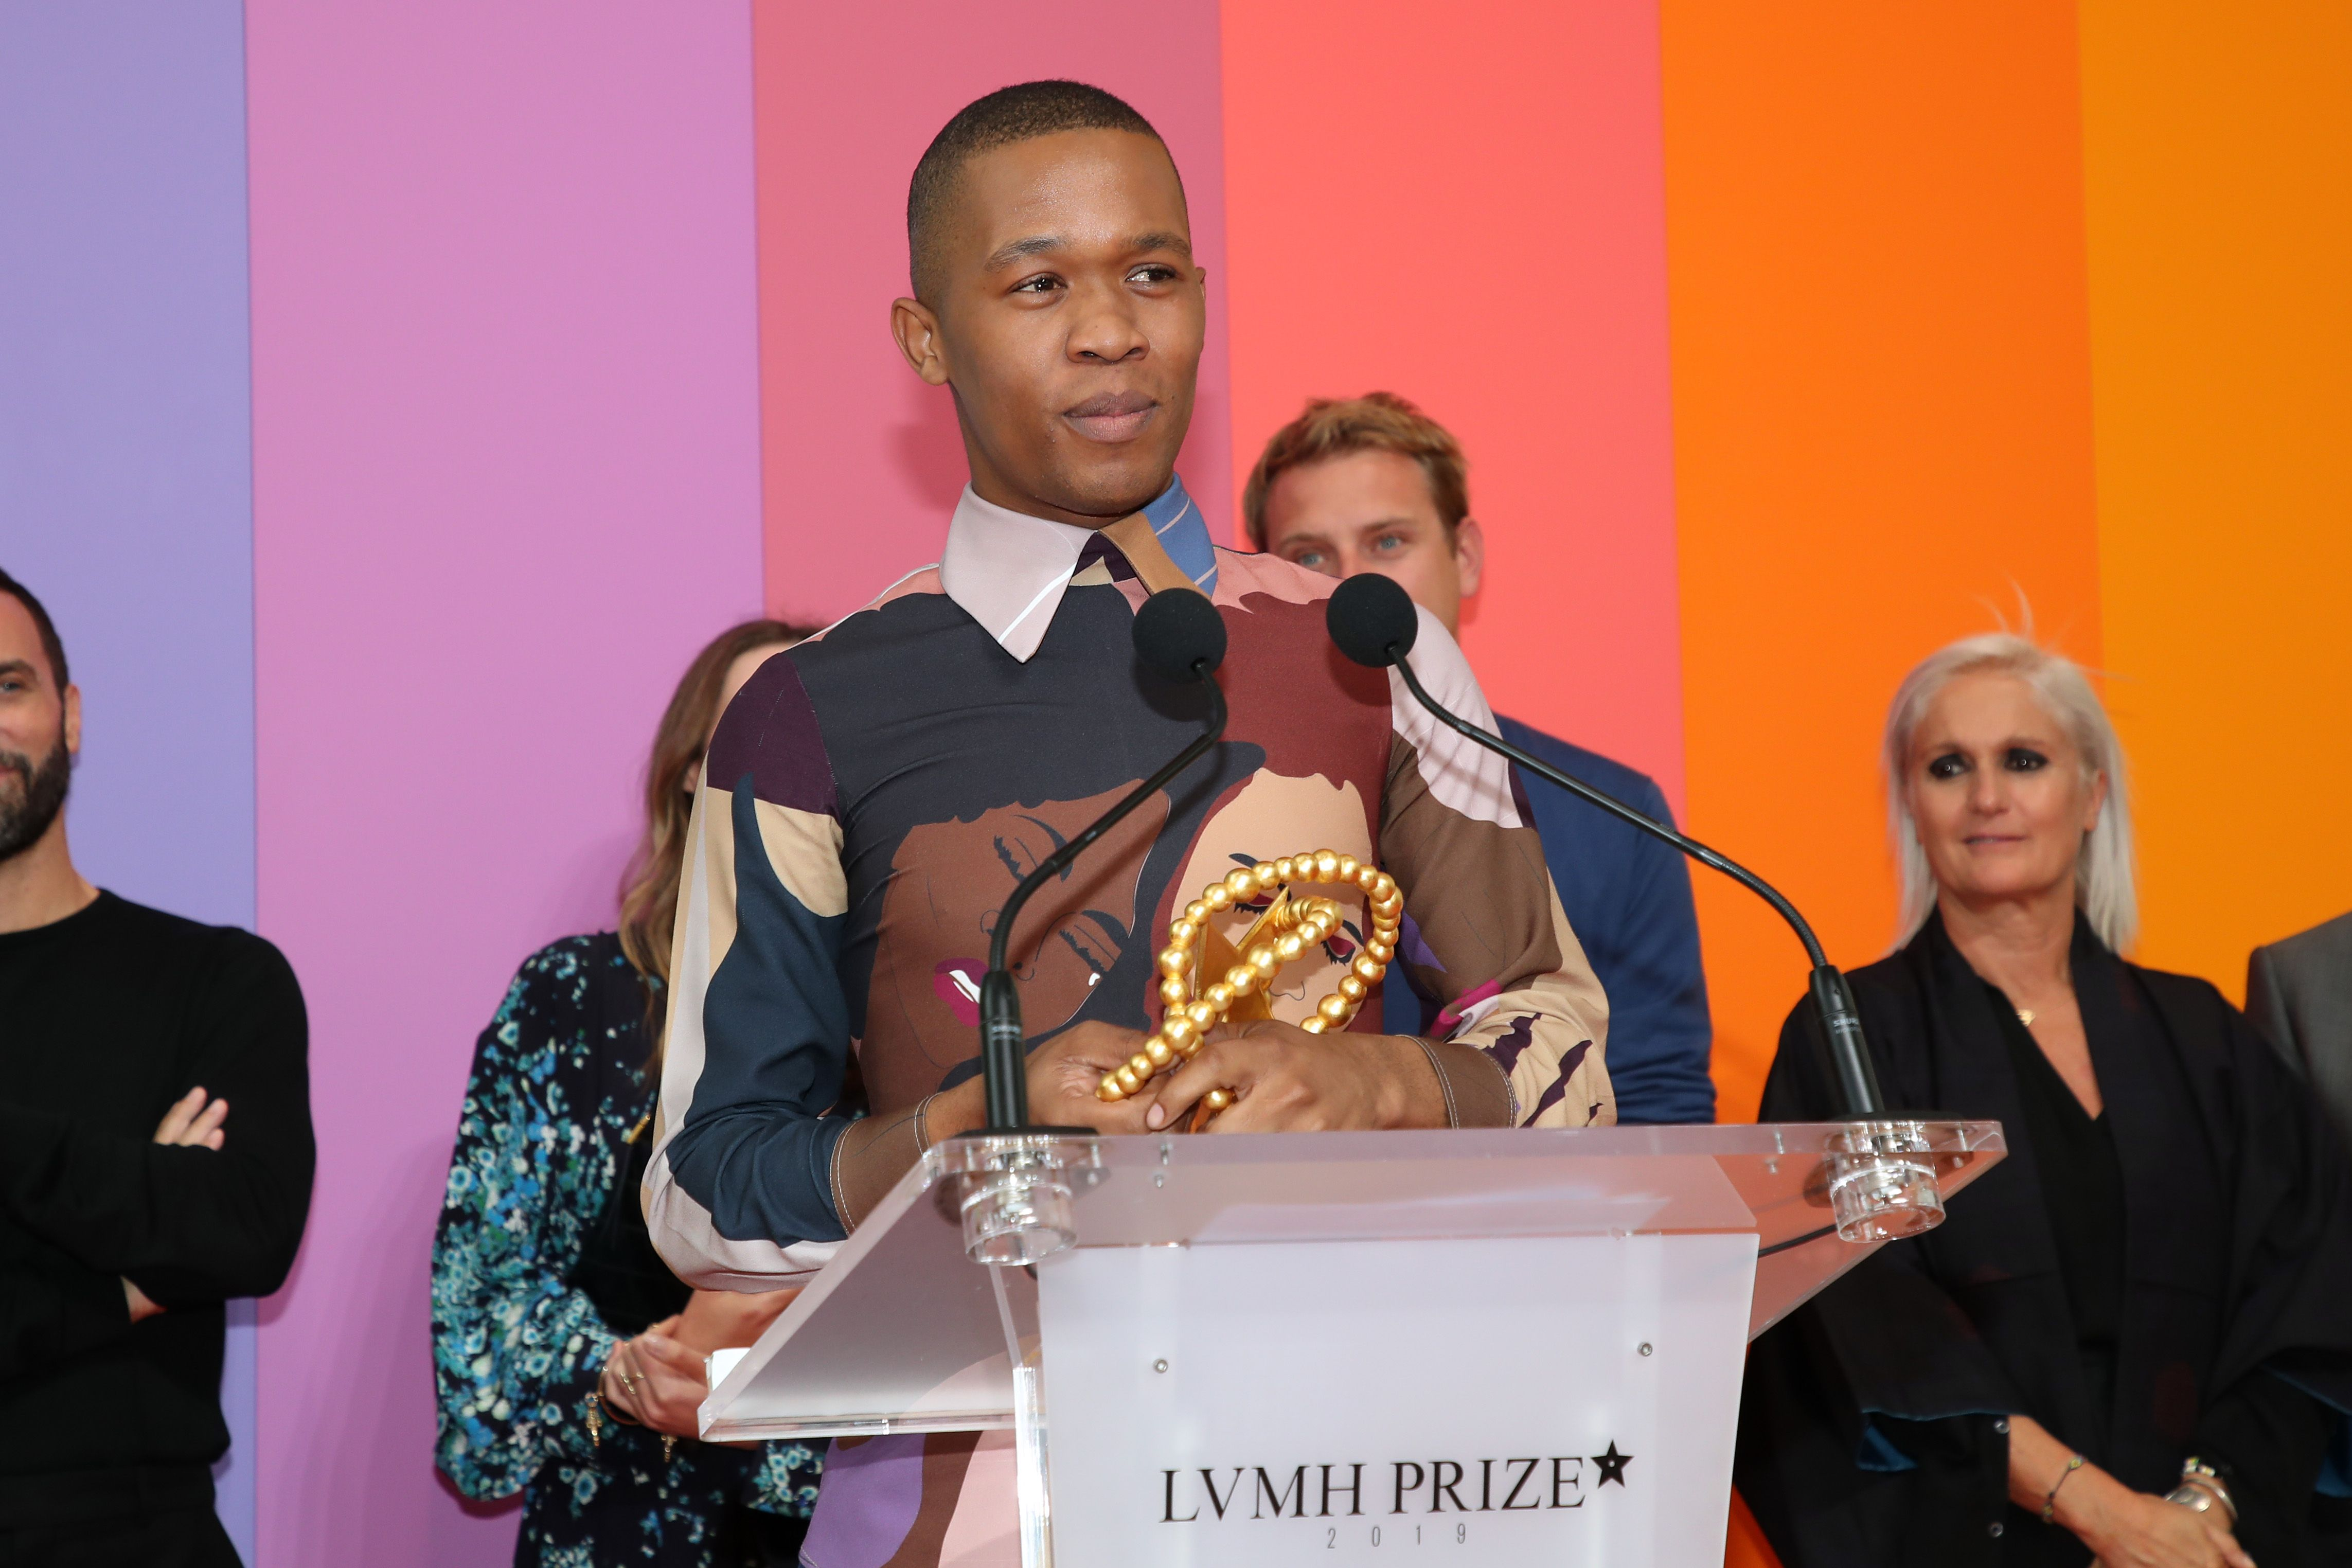 Thebe Magugu First LVMH Prize Recipient from Africa